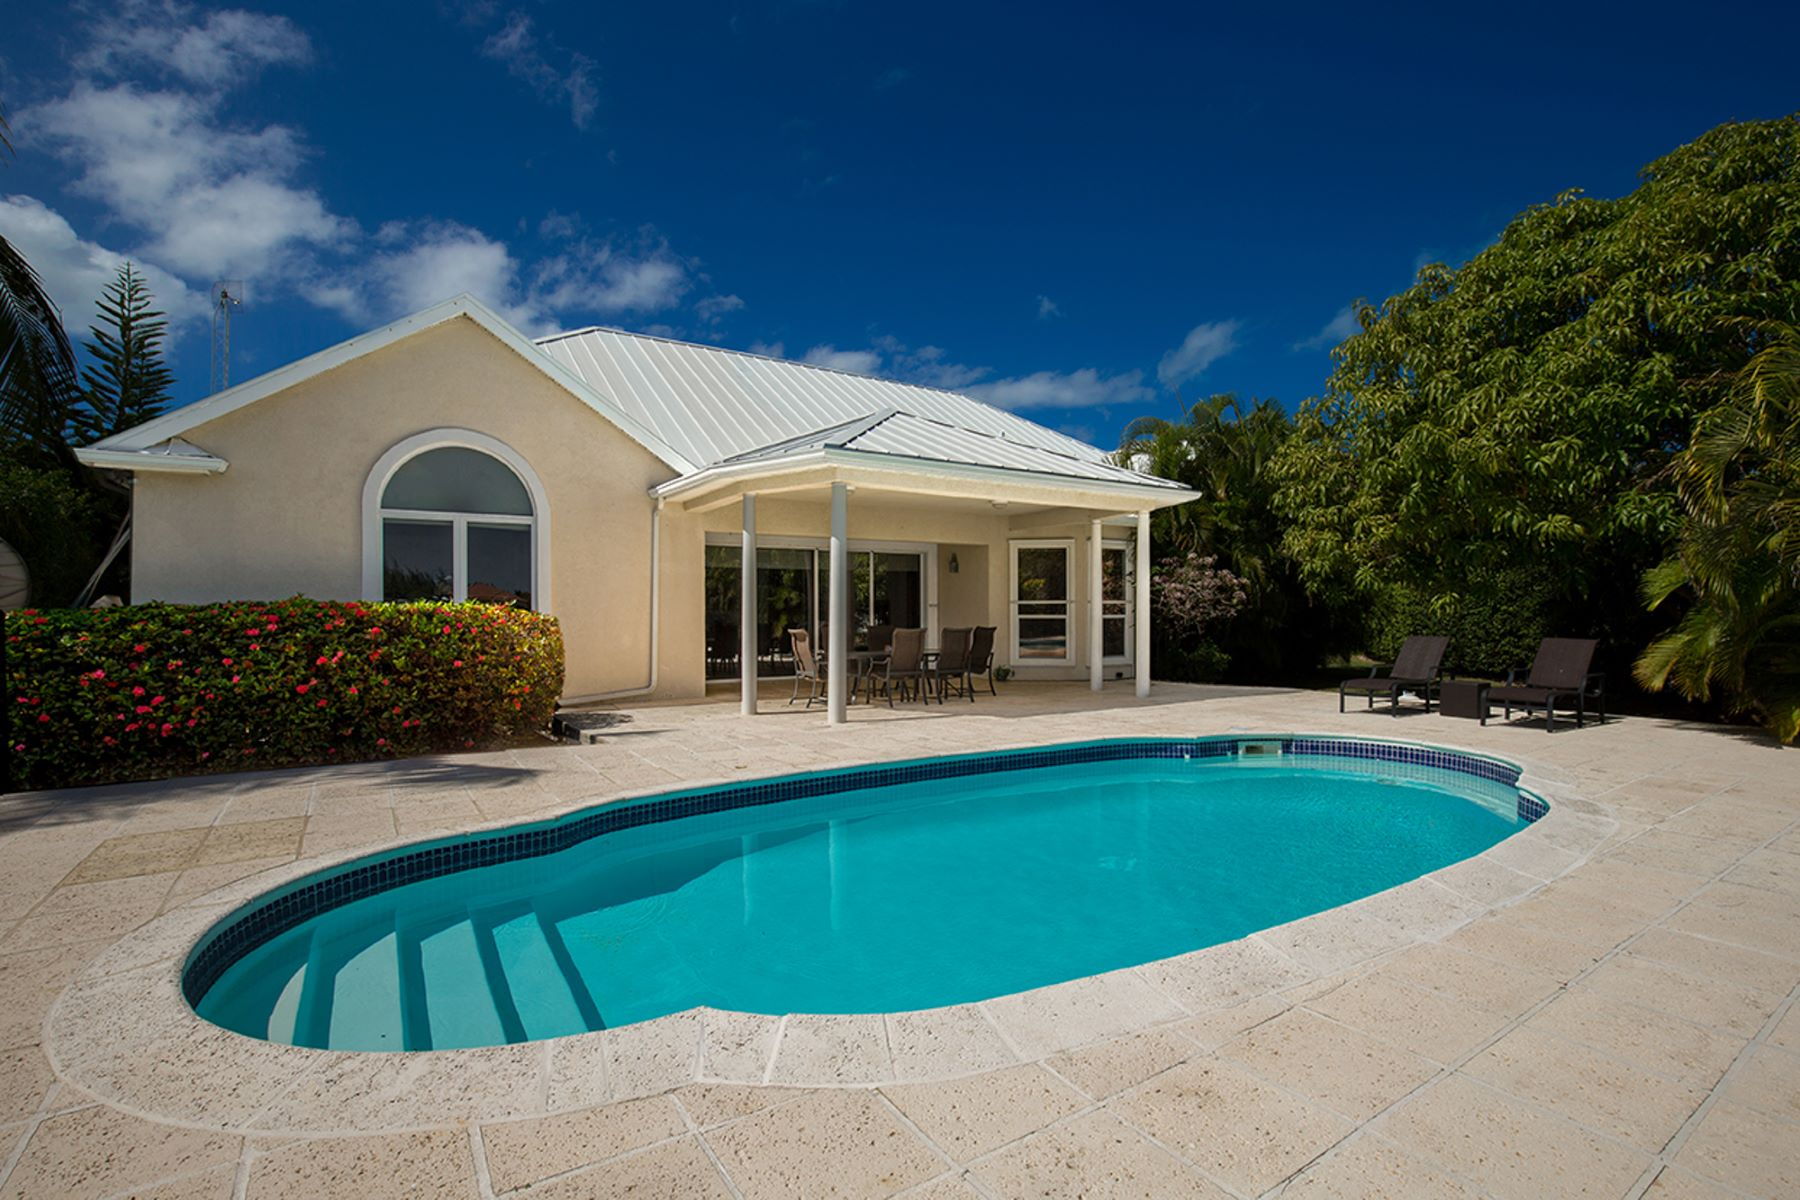 Single Family Home for Sale at Patrick's Island Executive Villa Other Cayman Islands, Cayman Islands